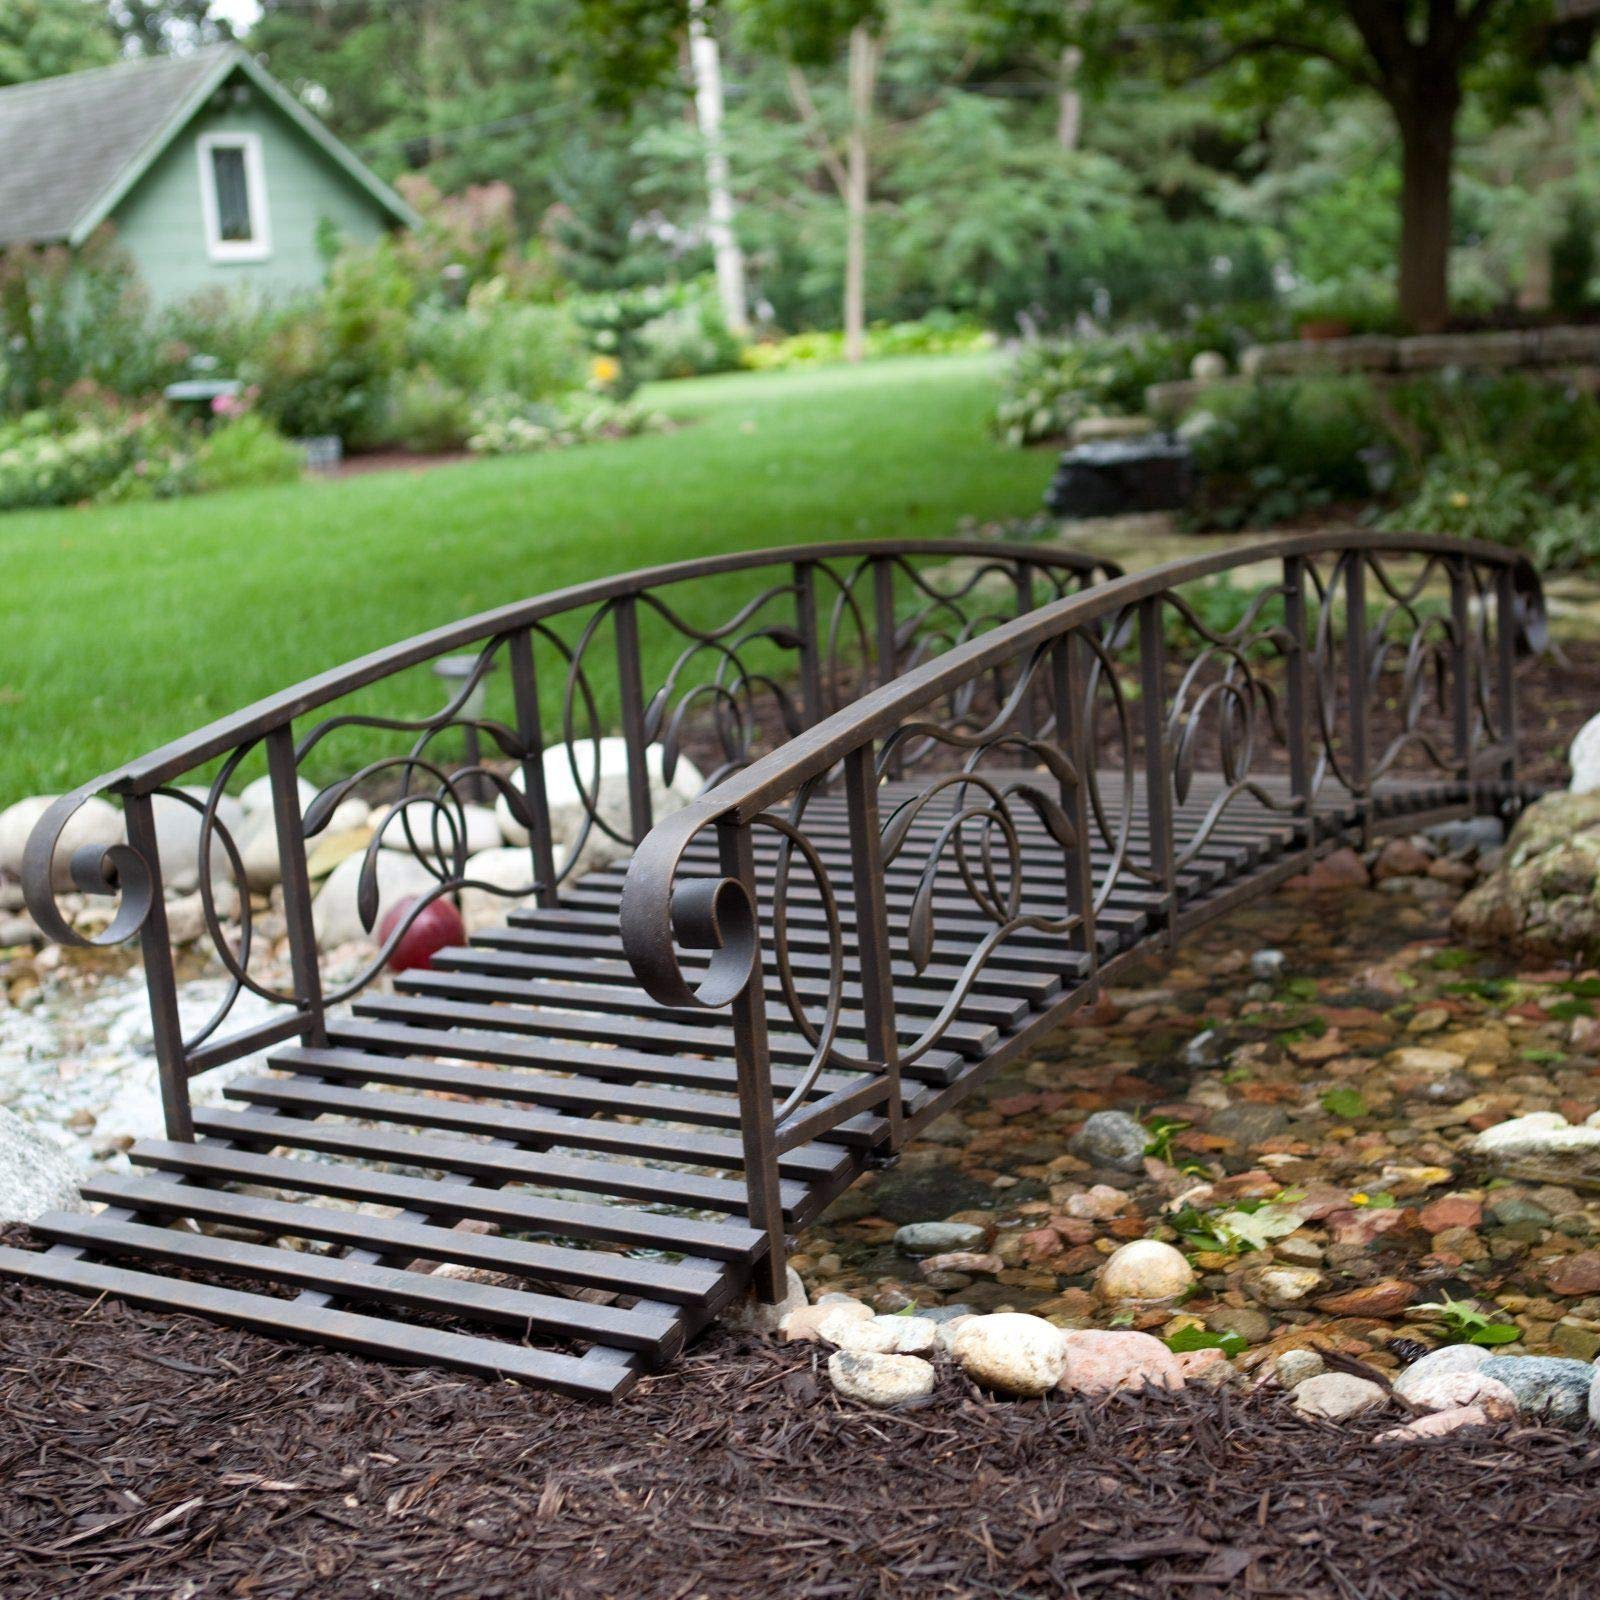 Home Improvements Weathered Black Finish Metal 8 Foot Garden Bridge Outdoor Yard Lawn Landscaping by Home Improvements (Image #1)